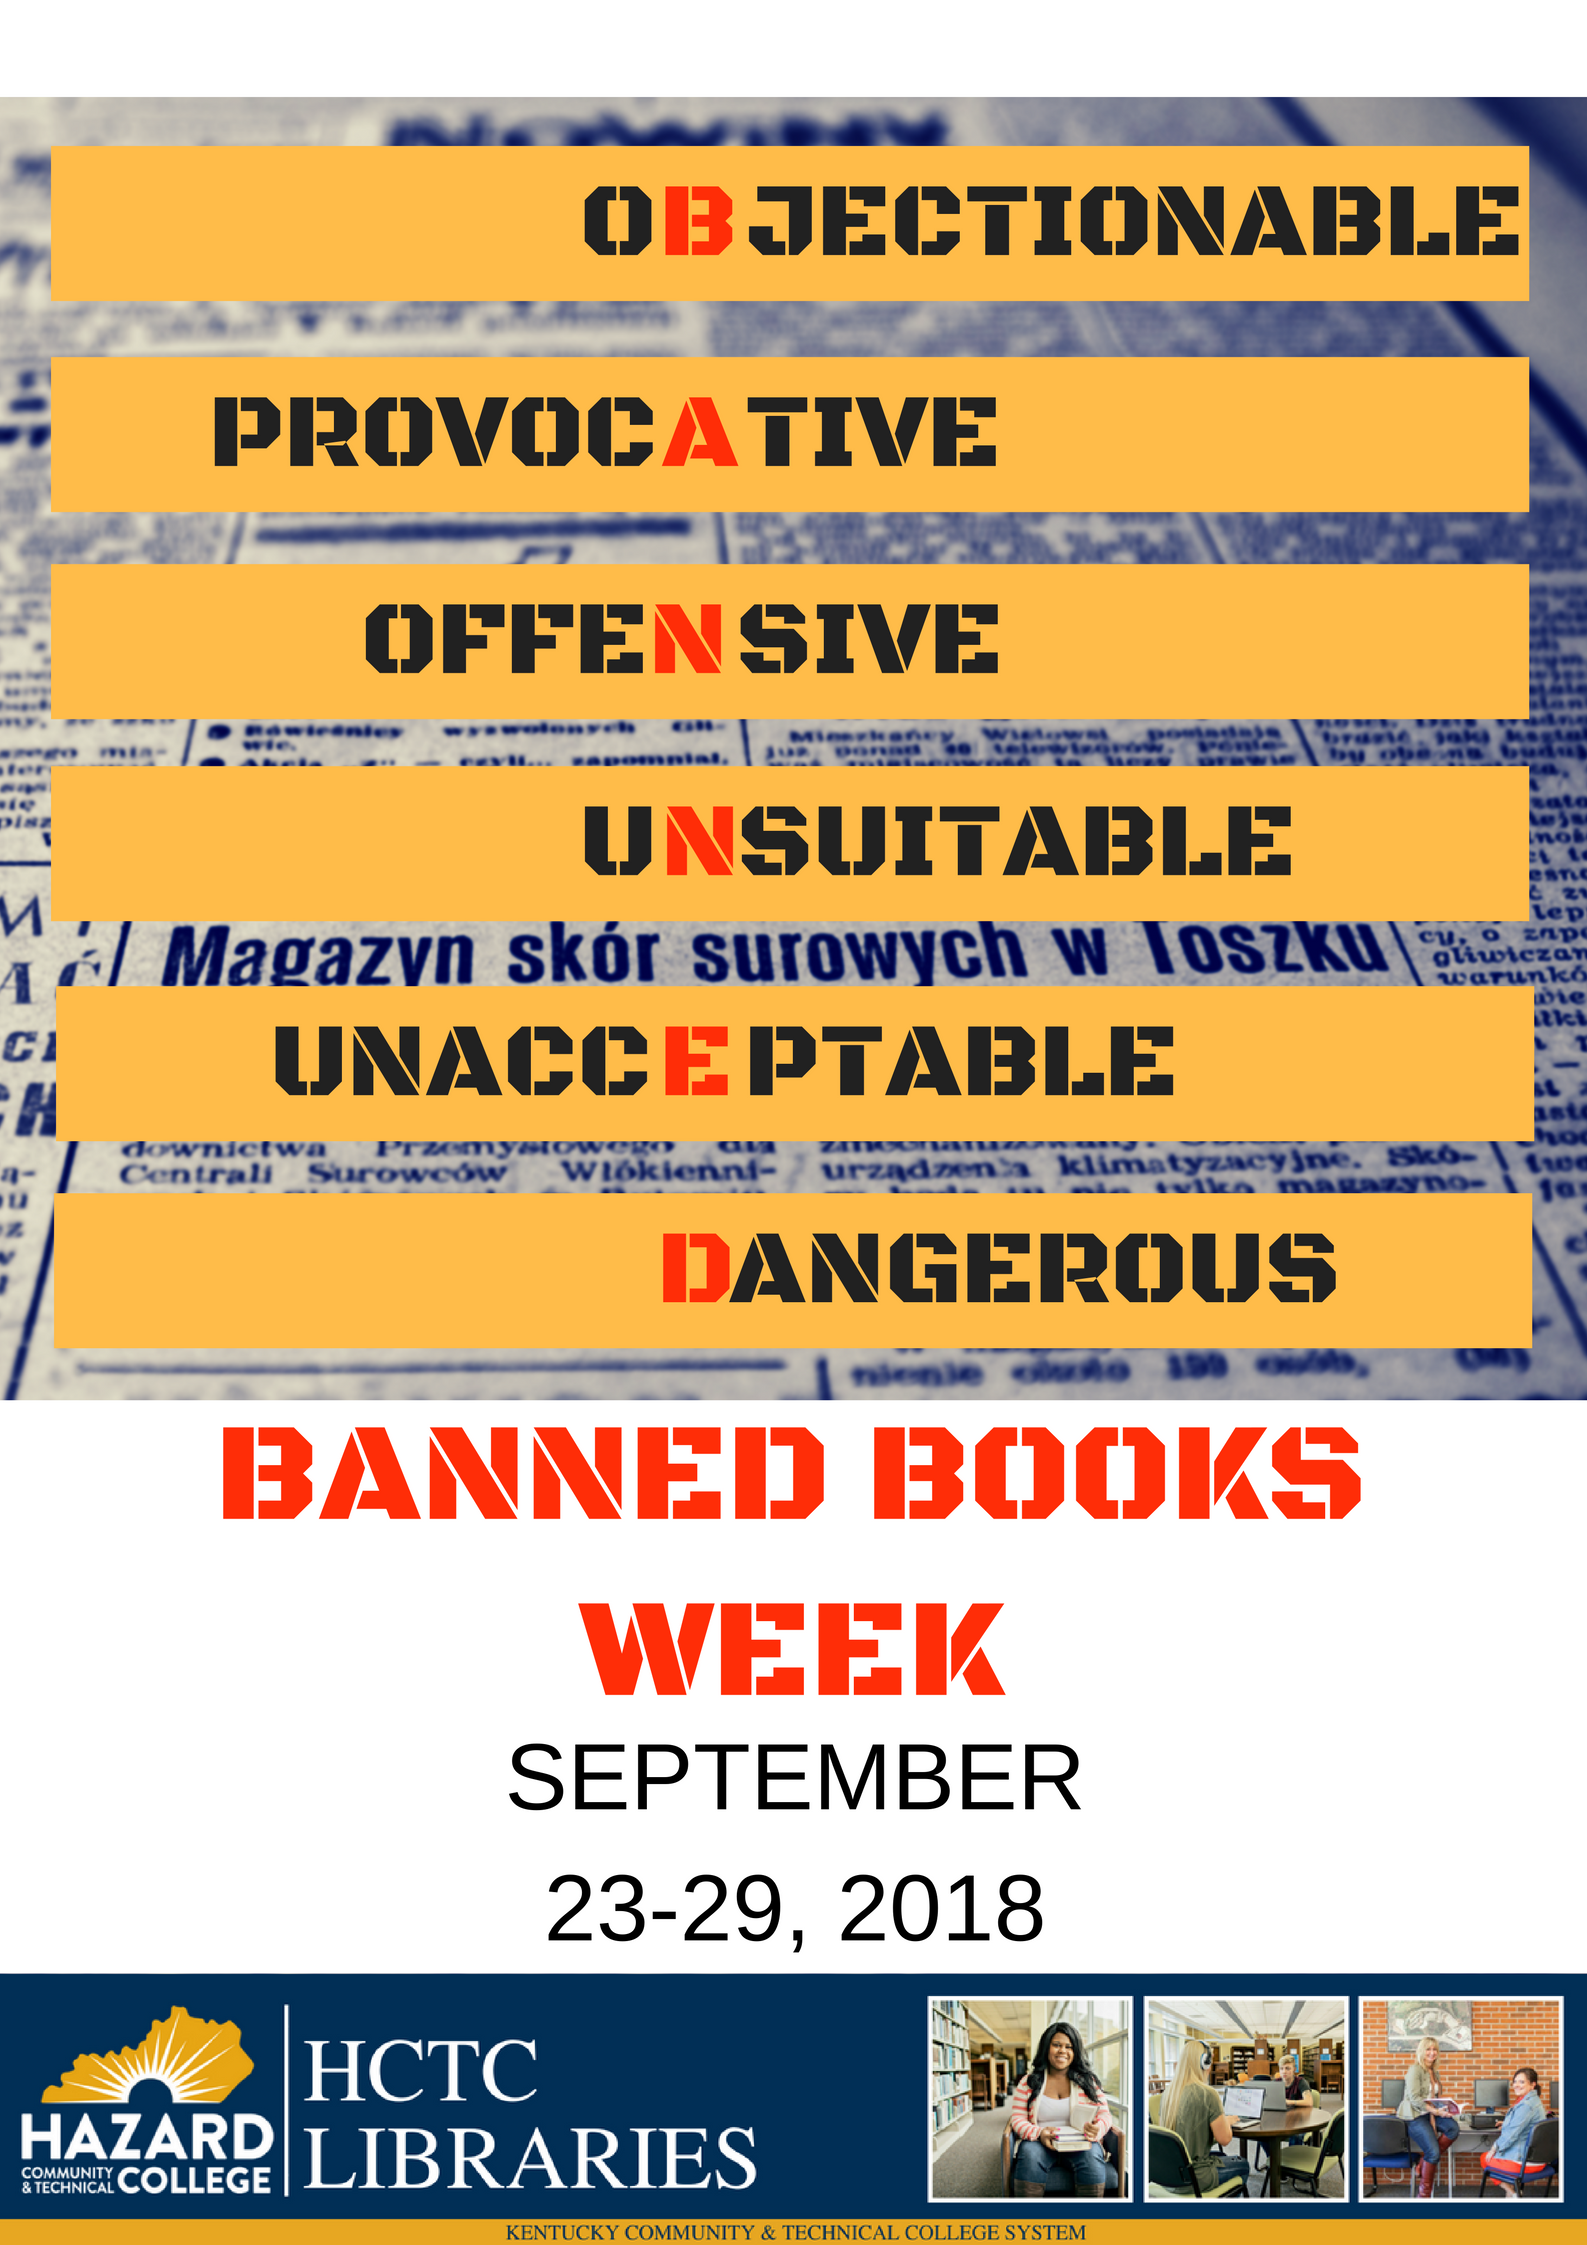 Banned Books Week is September 23rd through the 29th of 2018. Check out library displays promoting books that are frequently challenged or banned due to perceived controversial content.